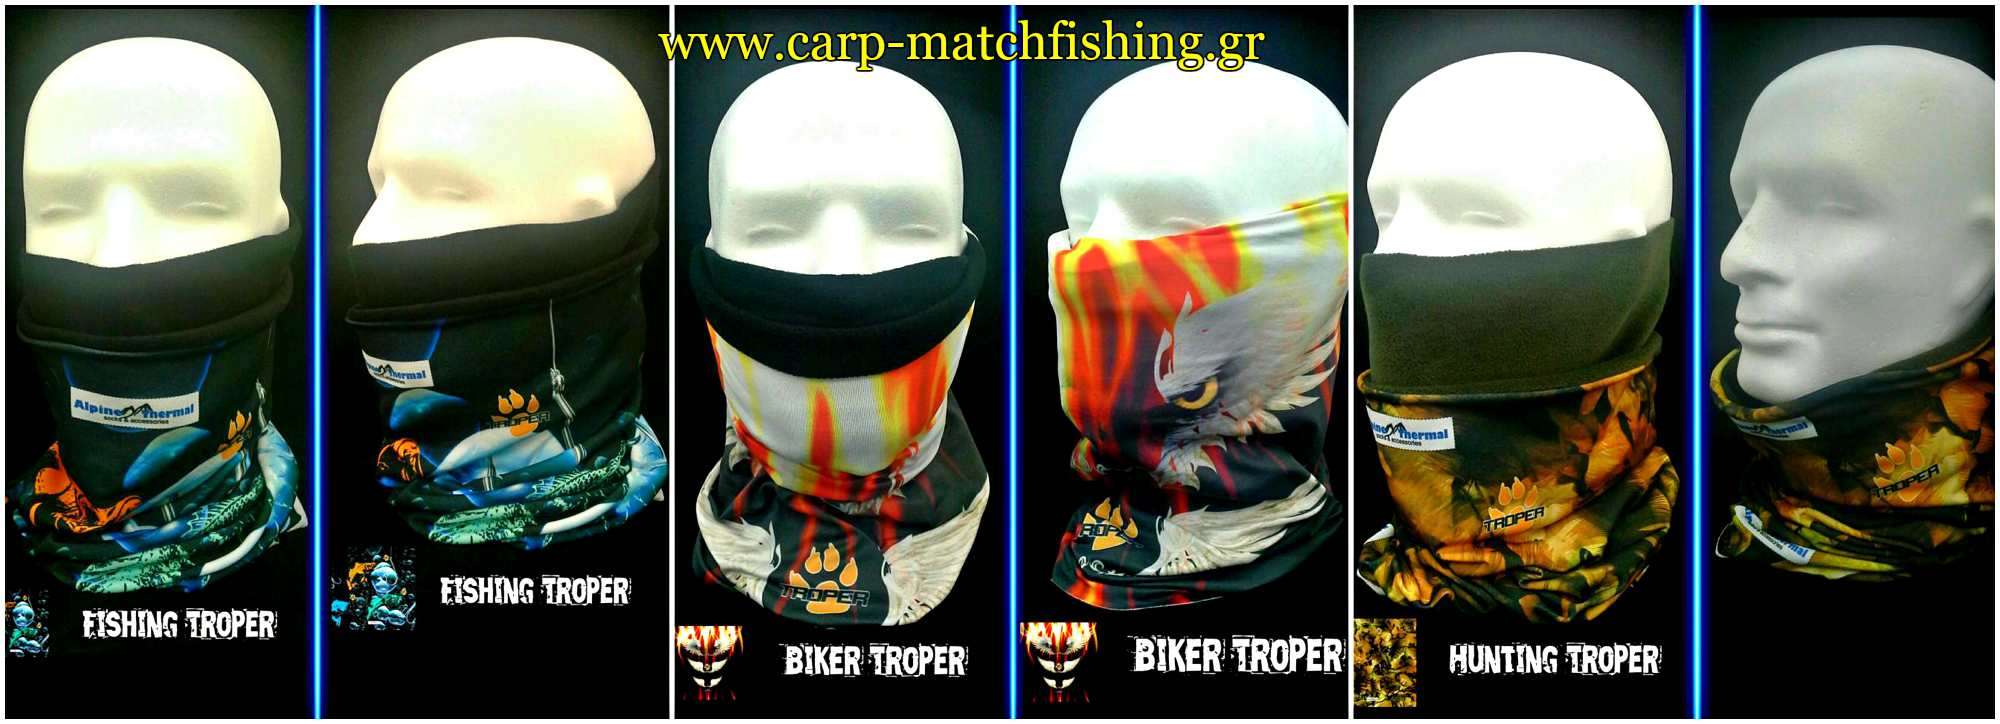 3 troper biker fishing hunting carpmatchfishing